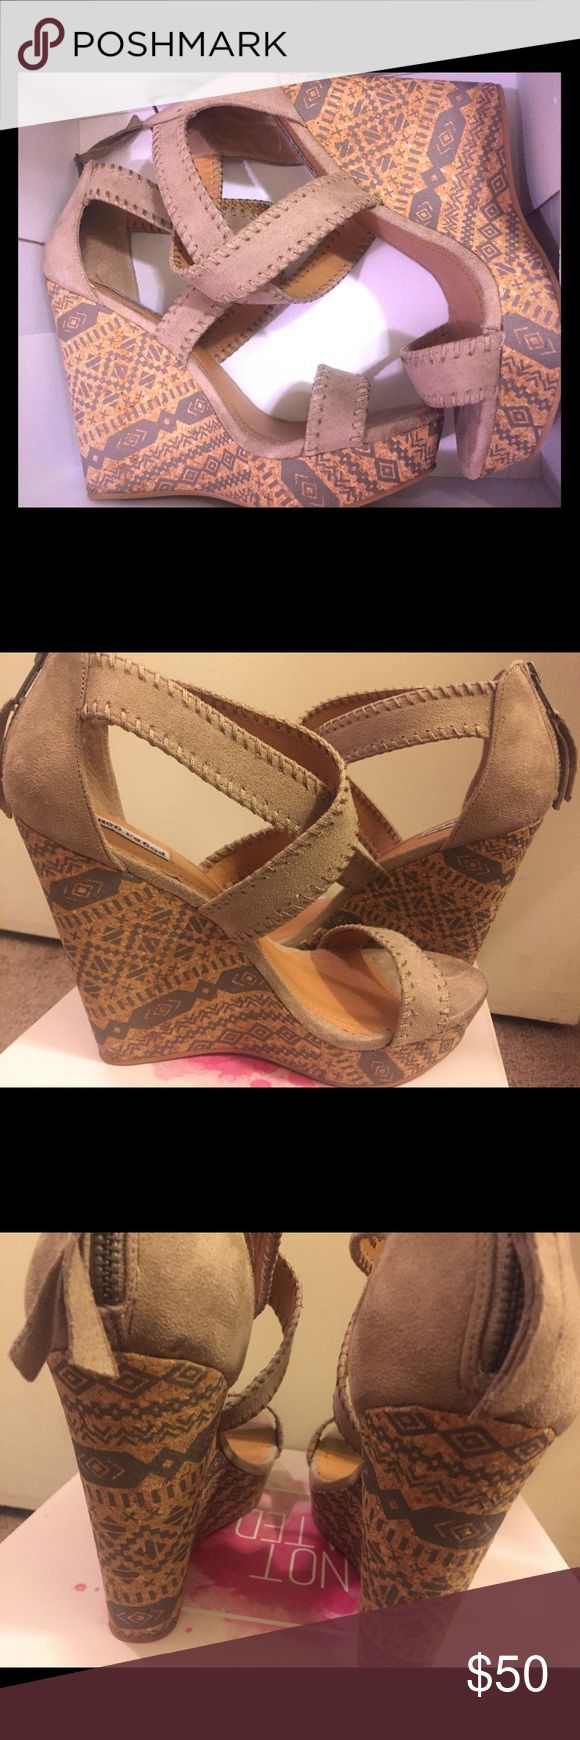 """Brand new sz 10 women suede aztec wedges Brand new suede aztec print style wedges! Zip up on the back! Fashionable and chic!! 5""""inch wedge Shoes Sandals"""